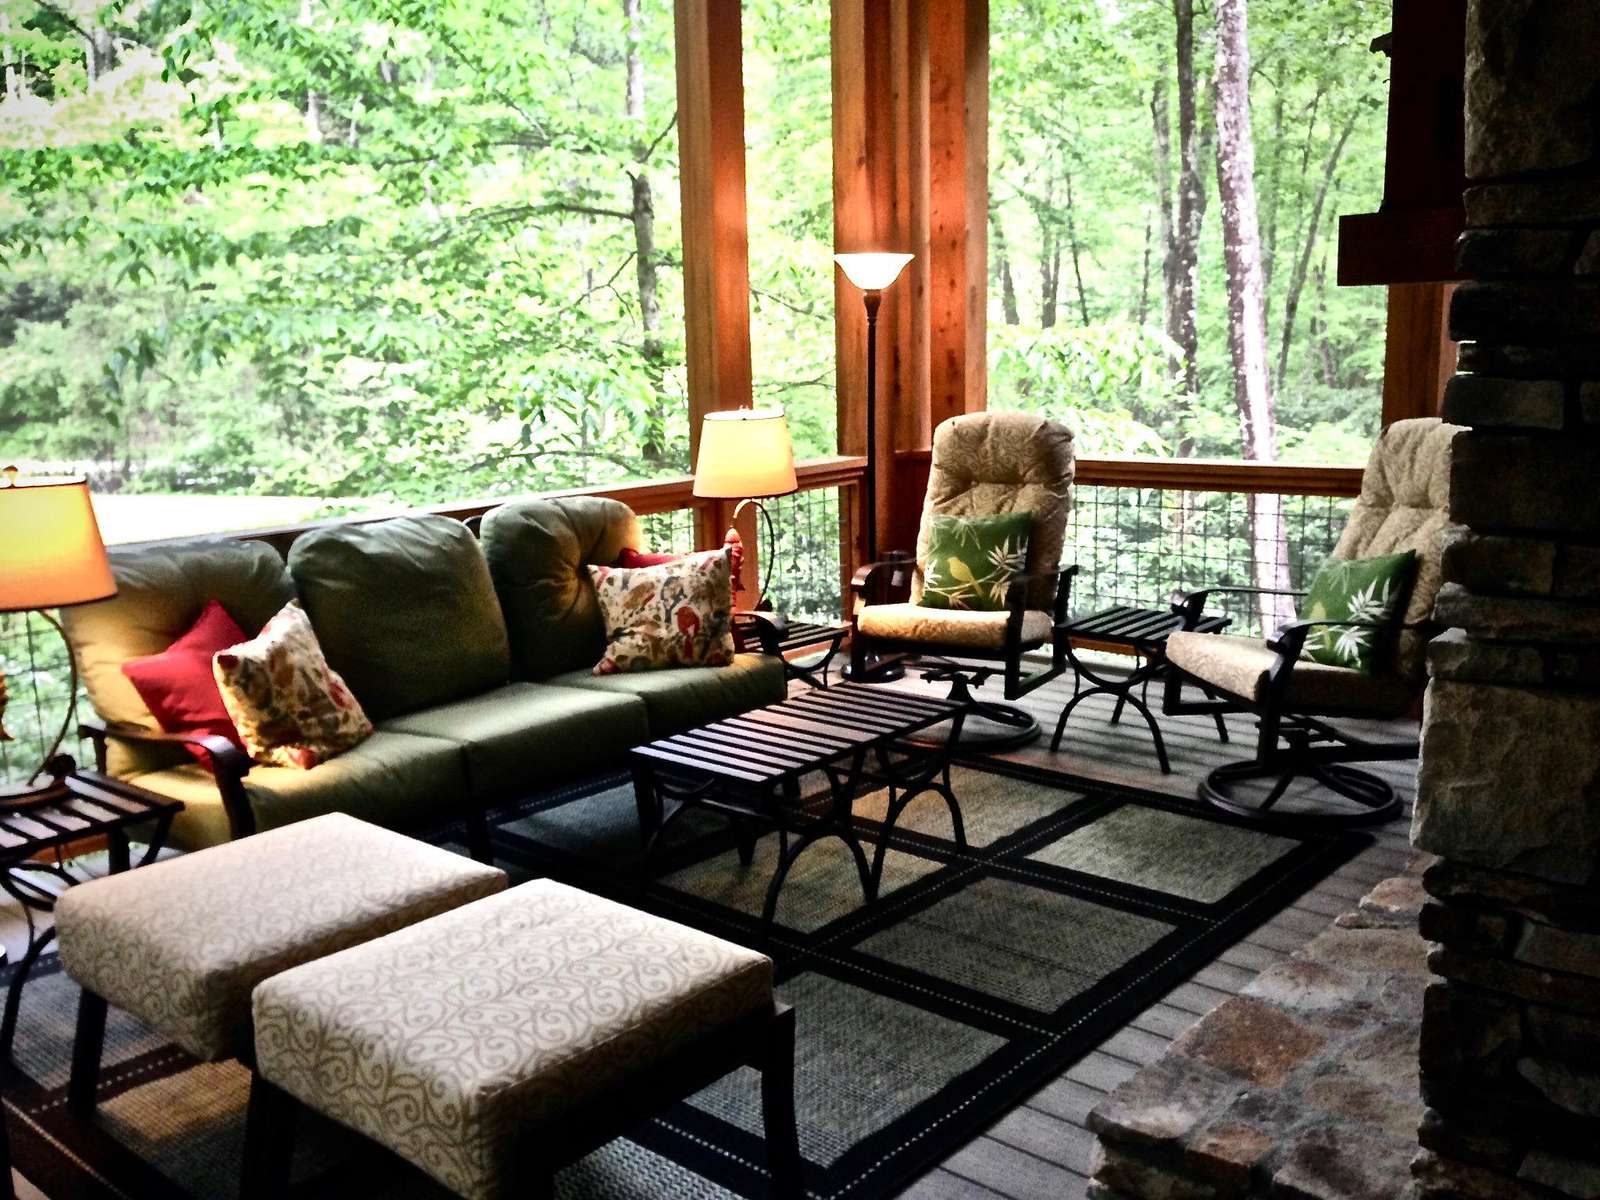 Screened Room is Perfectly Placed along the Melodious Creek